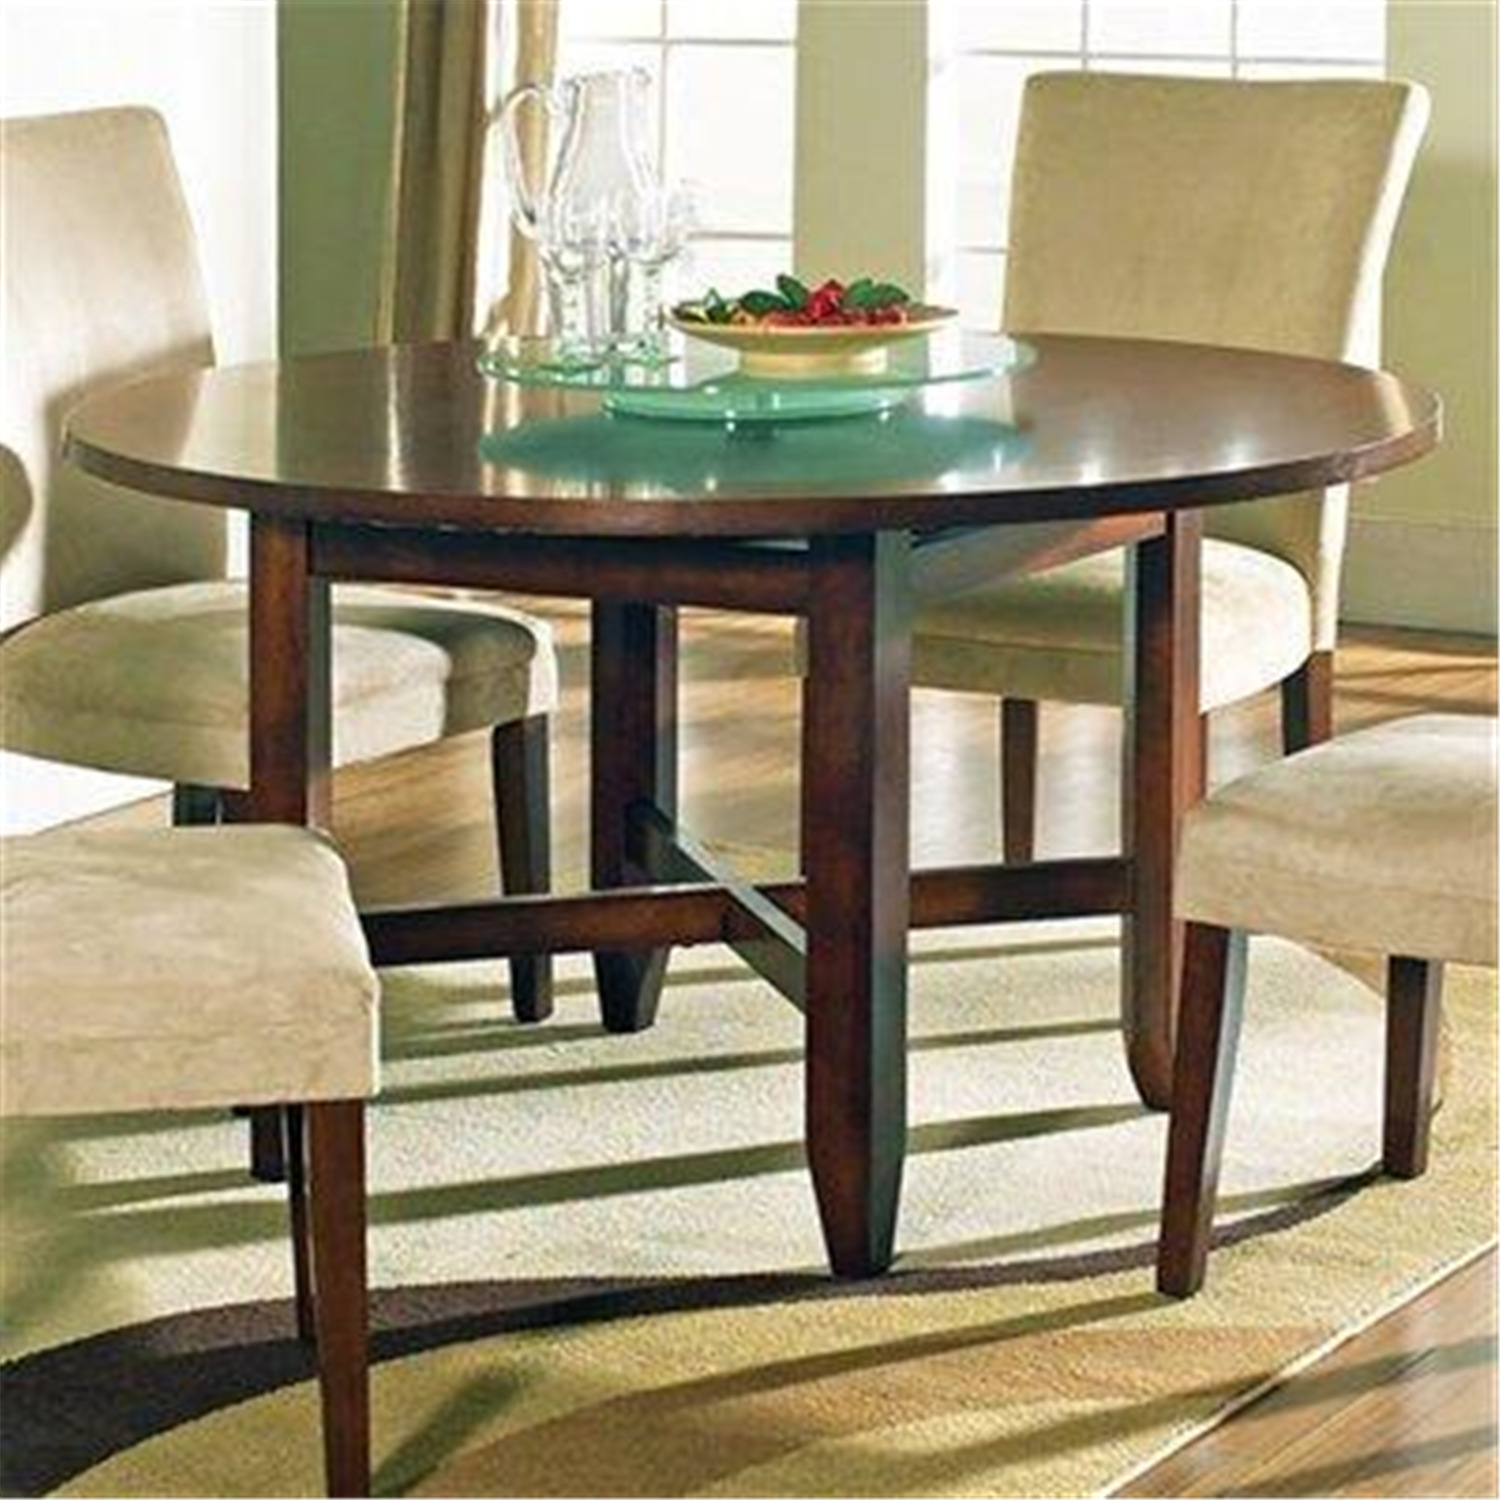 Dining table dress small dining table for Dining table dressing